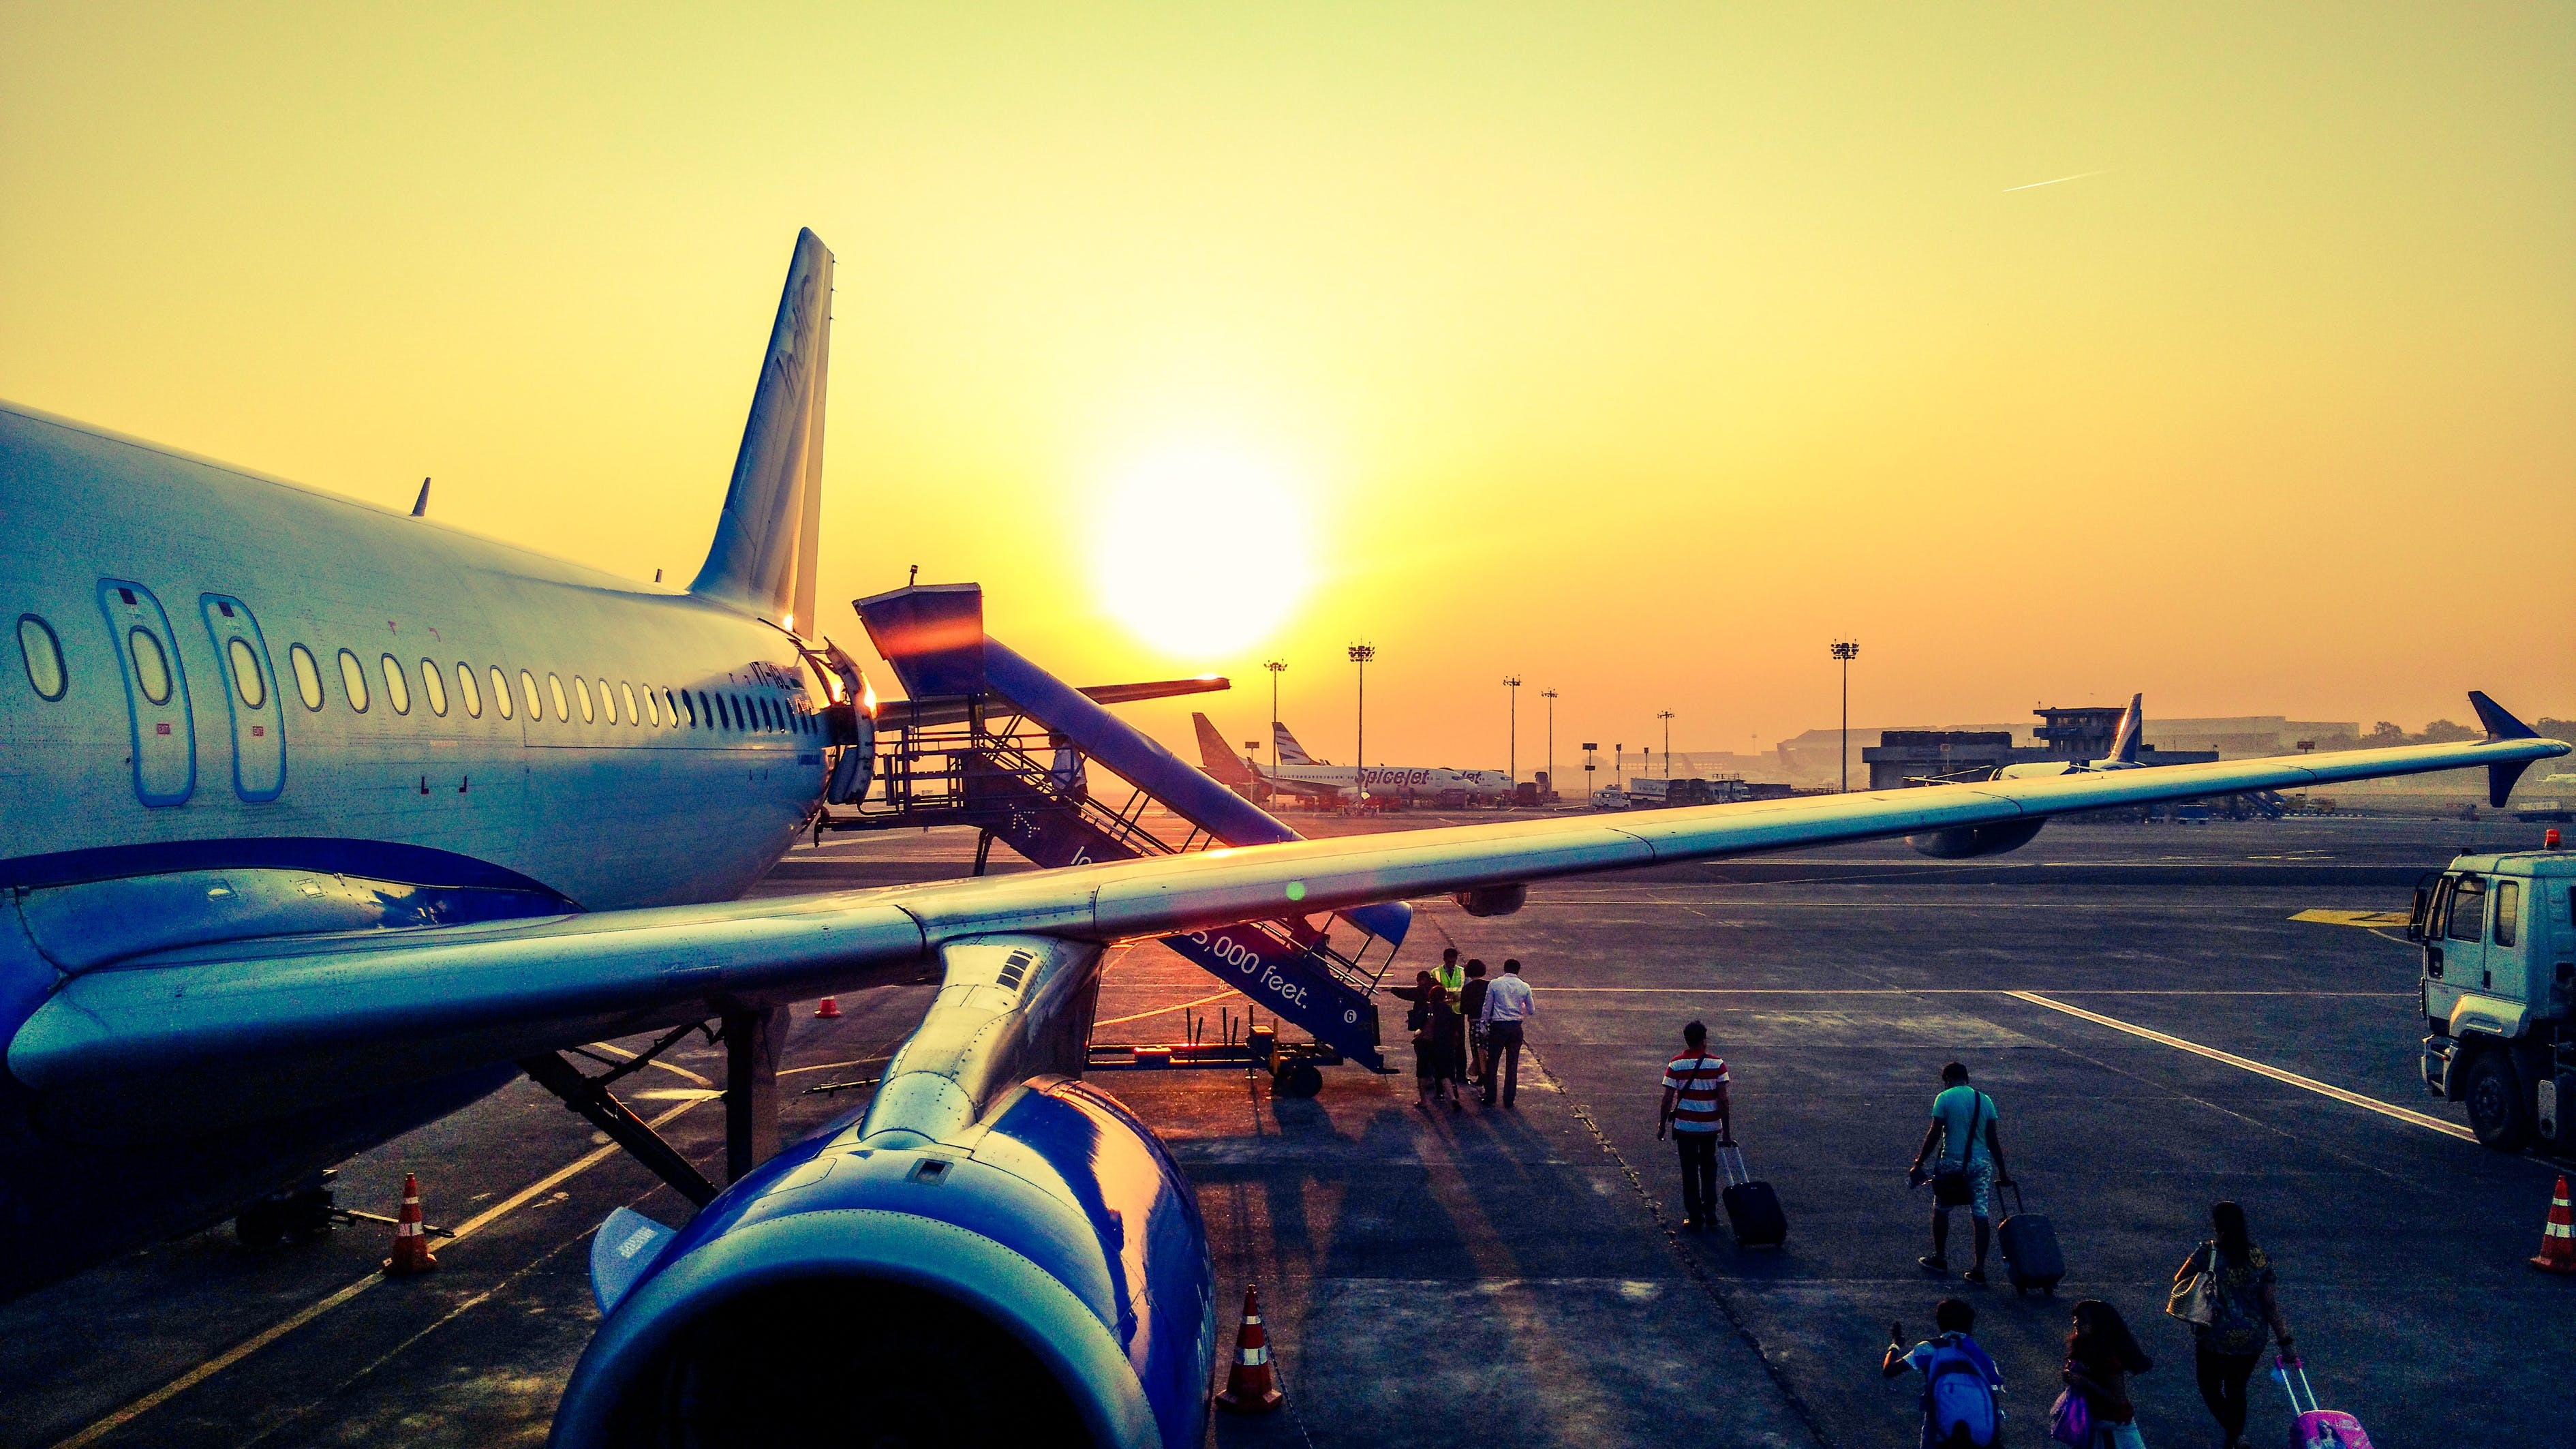 Photography of Airplane during Sunrise